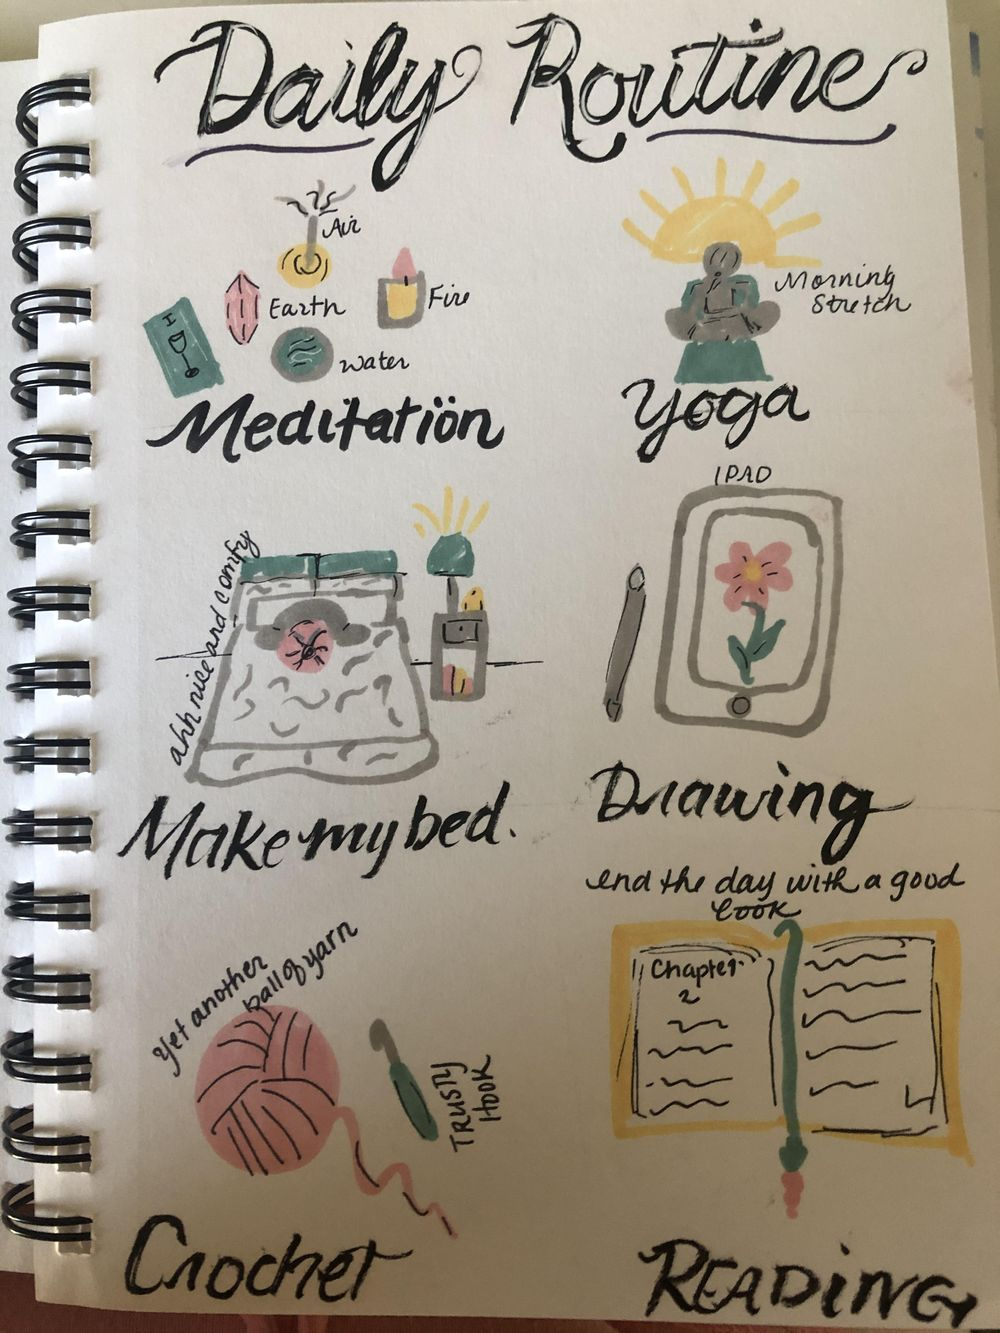 14 Day Journaling Prompts - image 6 - student project